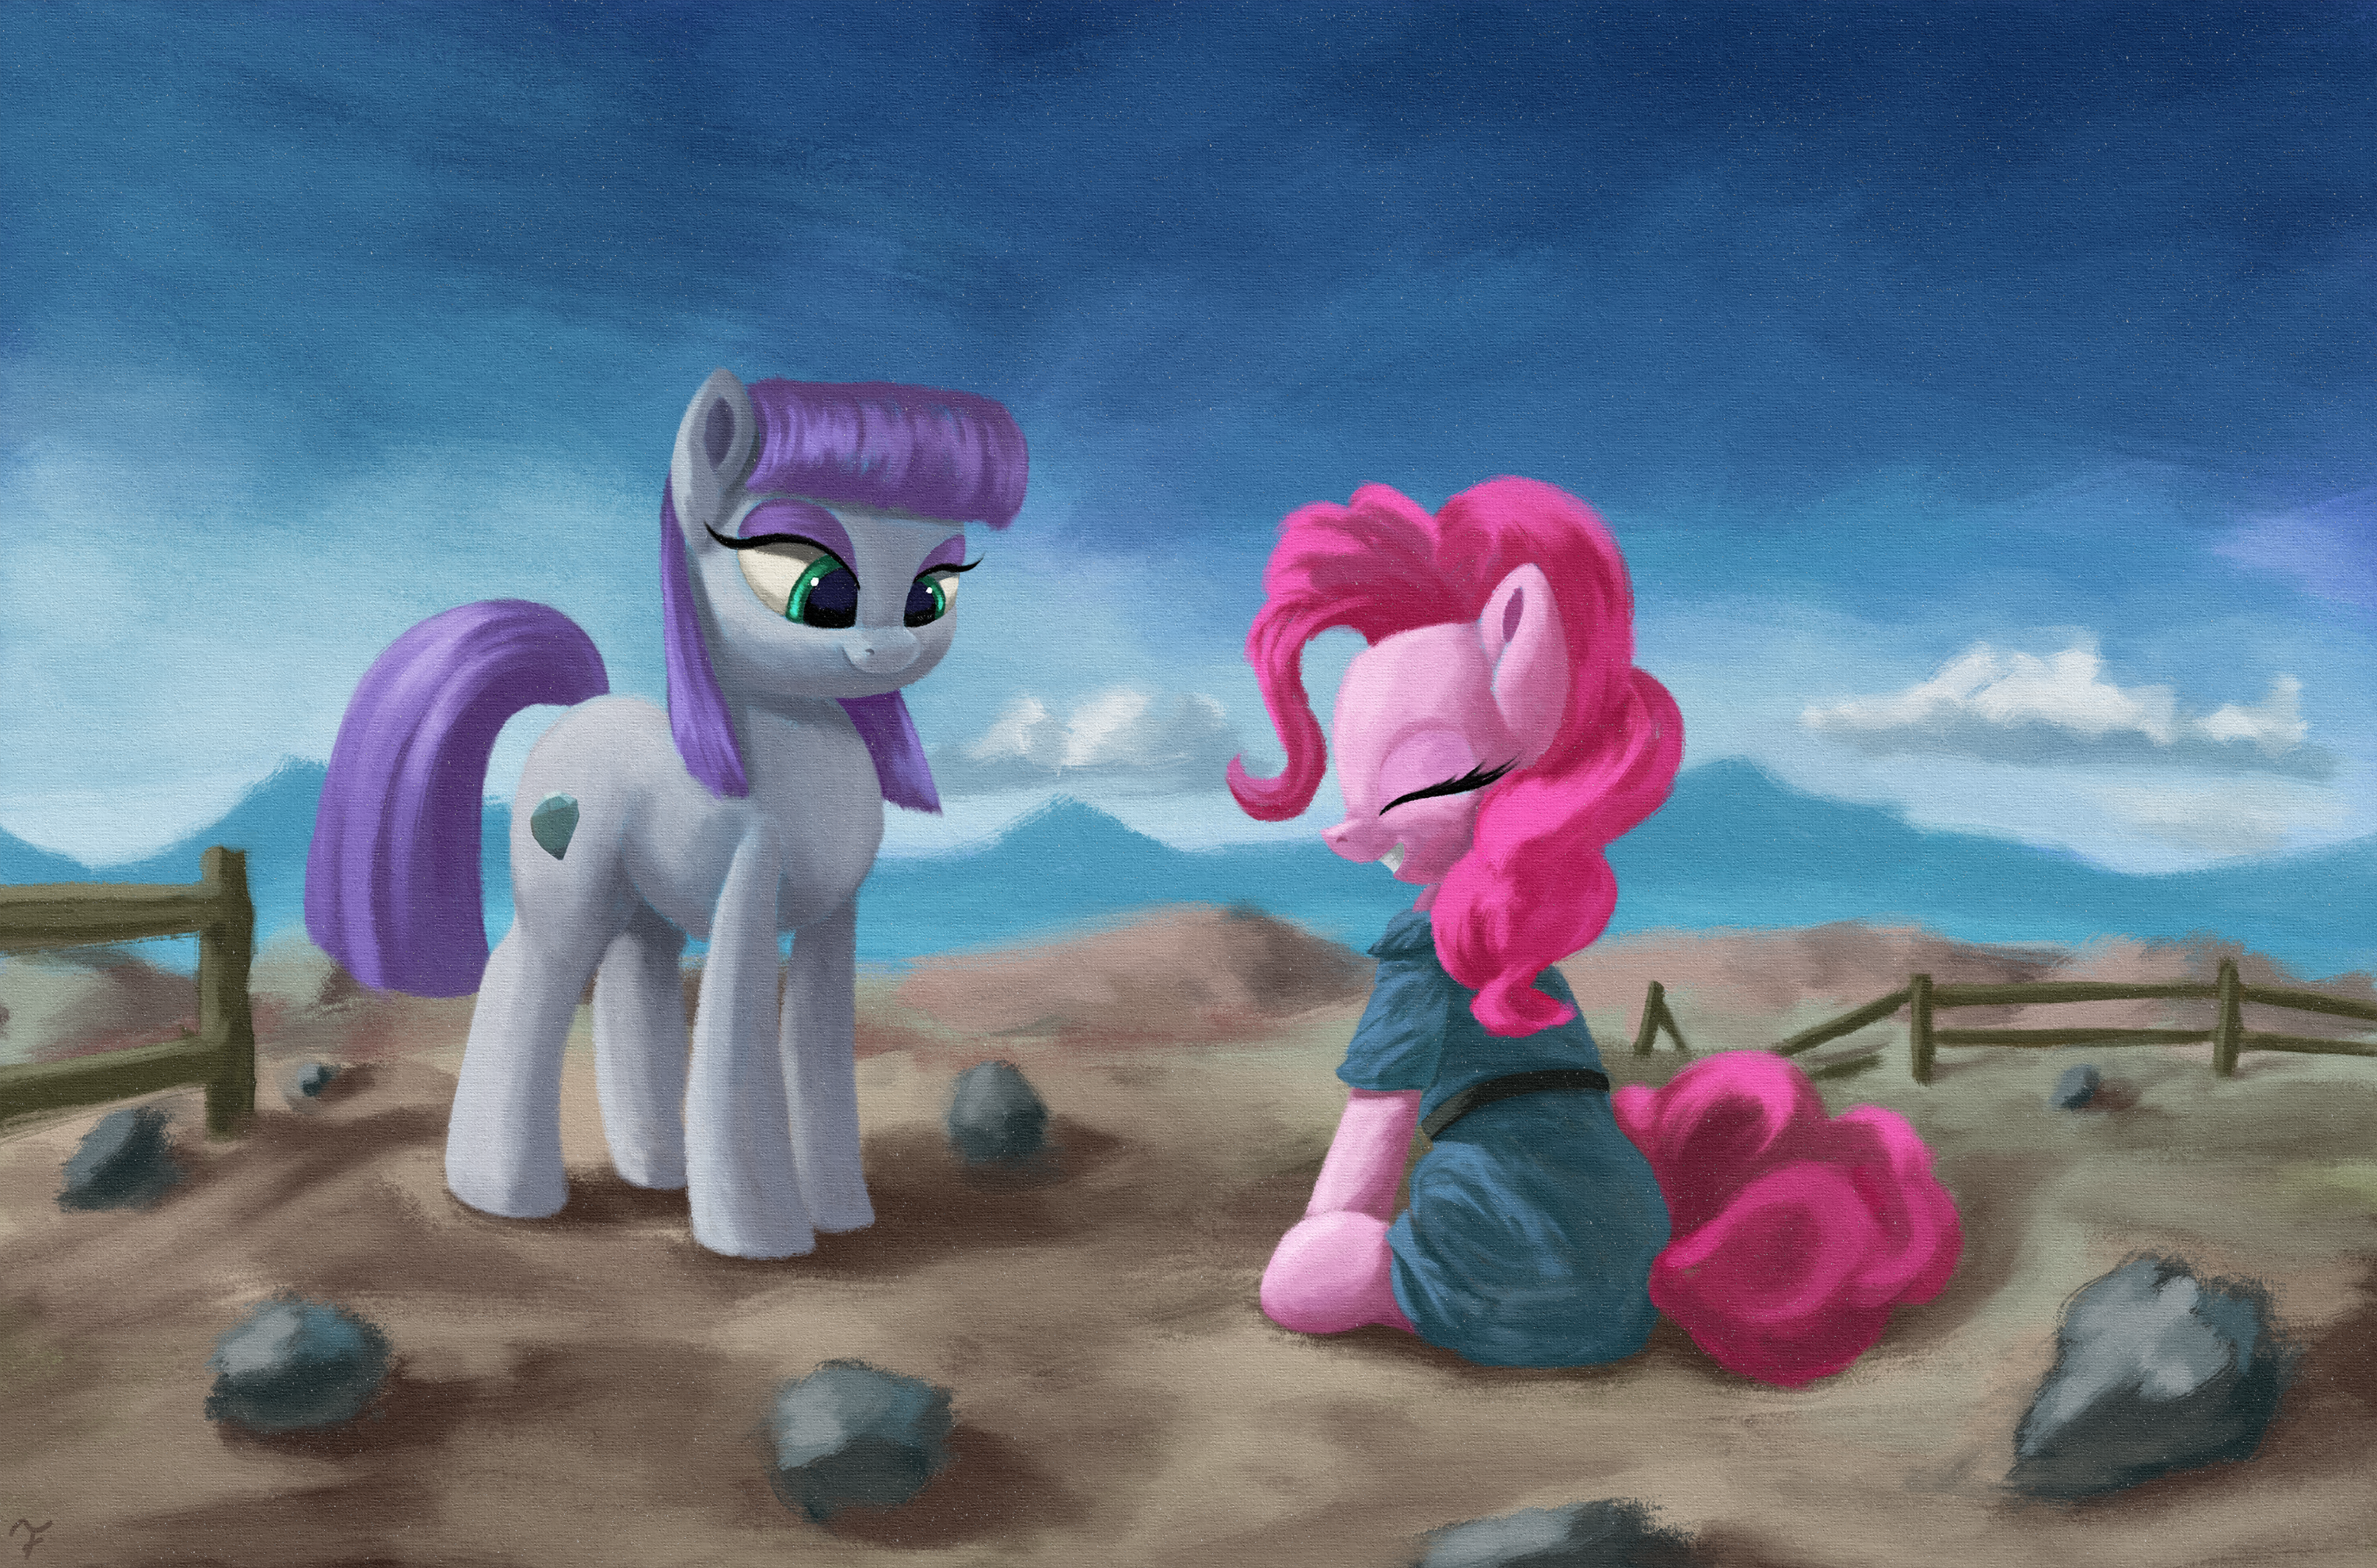 2620813__safe_artist-colon-flusanix_maud+pie_pinkie+pie_earth+pony_pony_clothes_clothes+swap_dress_duo_eyes+closed_female_grin_high+res_mare_rock+farm_siblings_.png